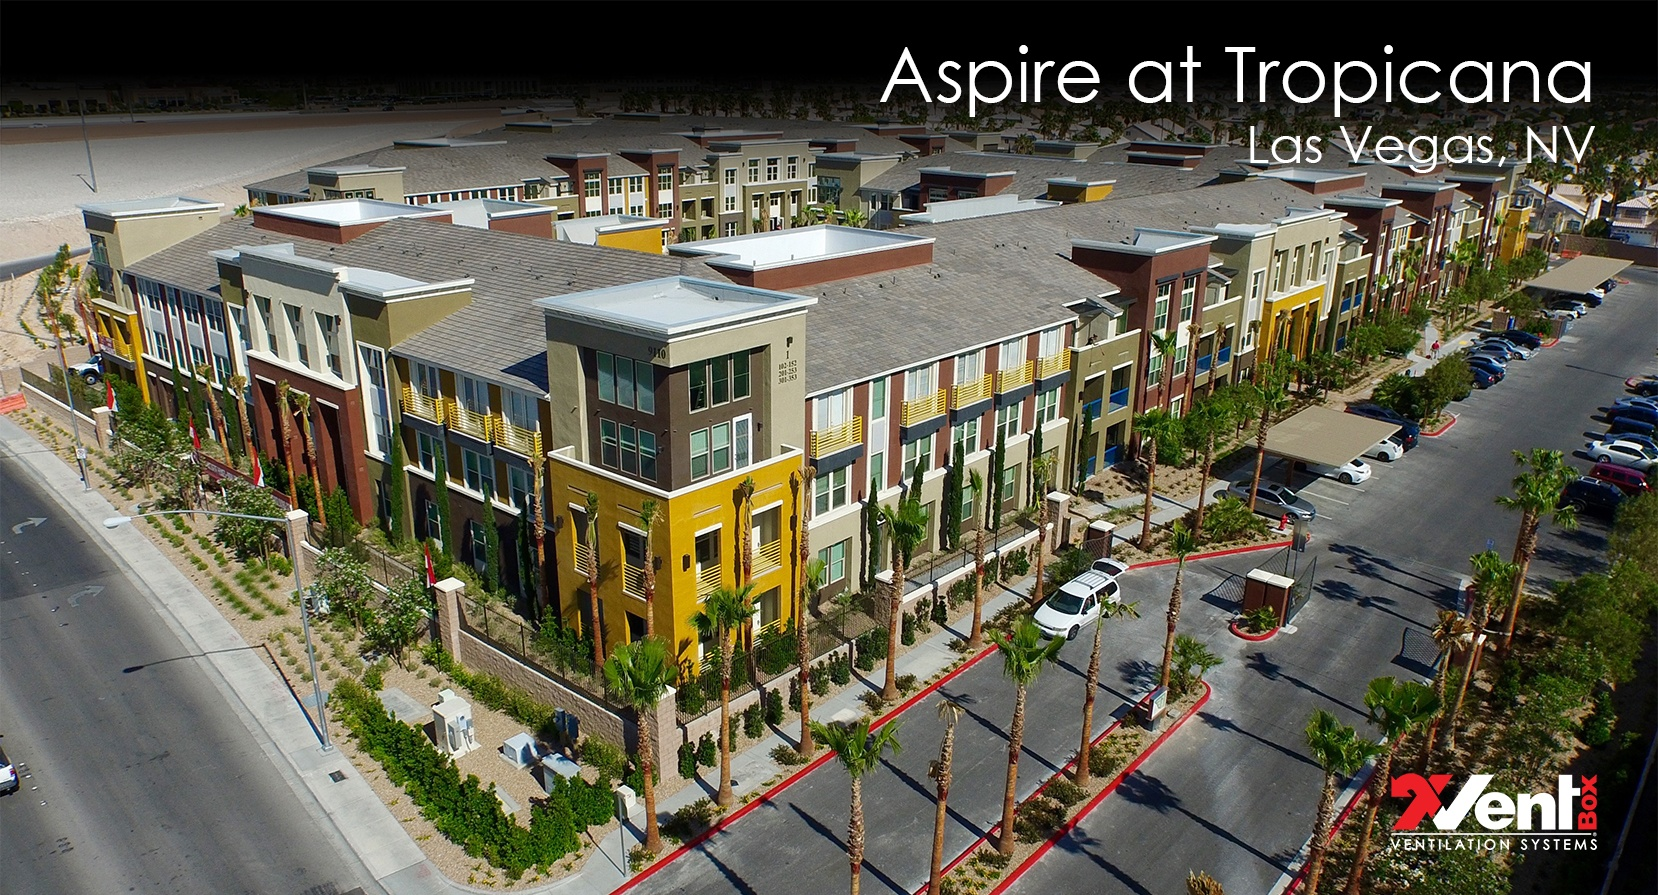 Aspire at Tropicana